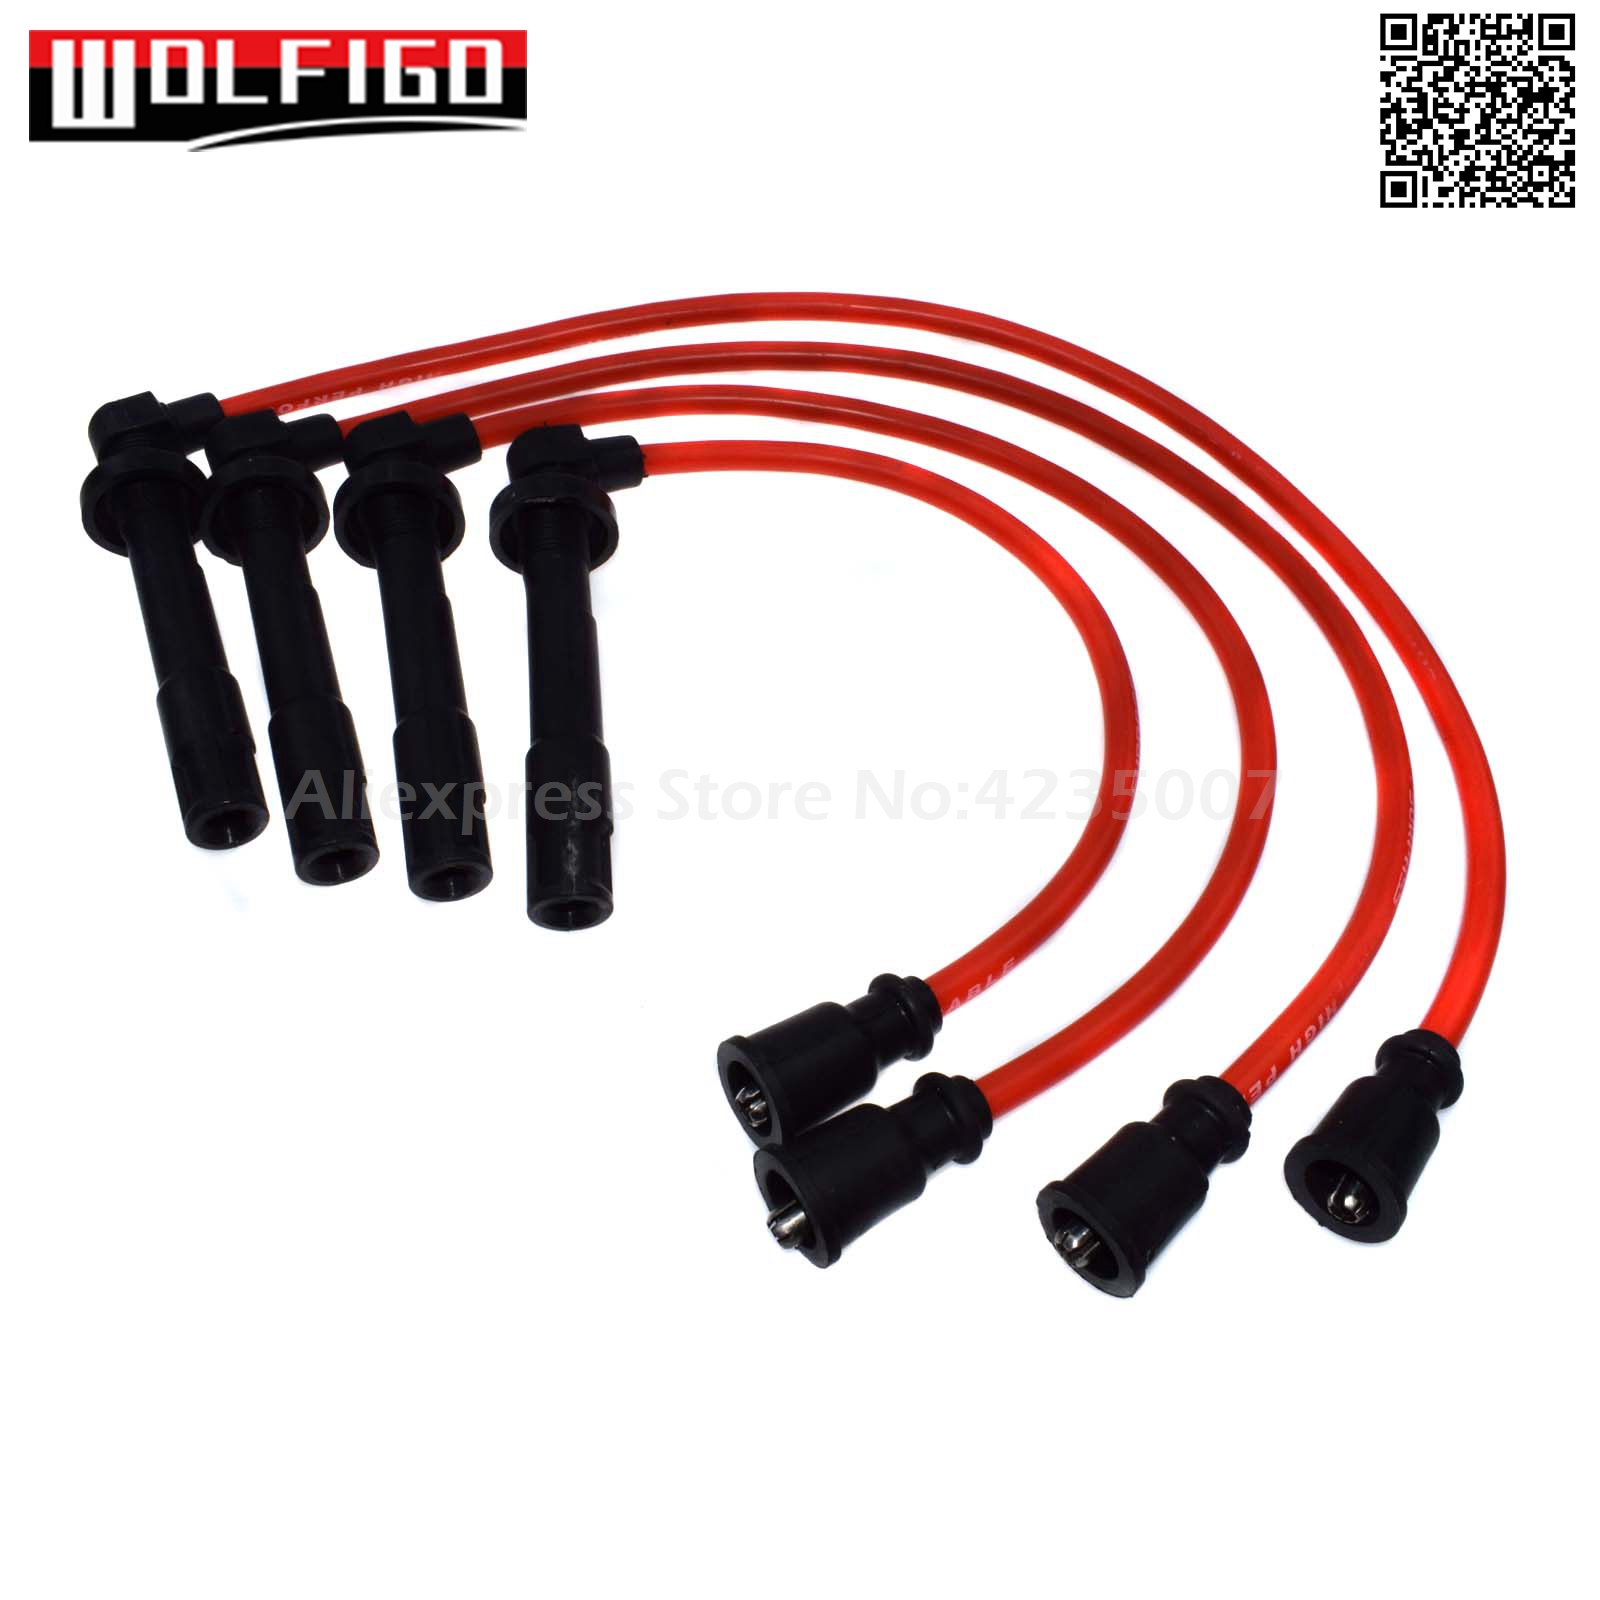 Spark Plug Wires Set 10.2MM Silicone Fit Mitsubishi Eclipse Red 4G61 4G63 4G64